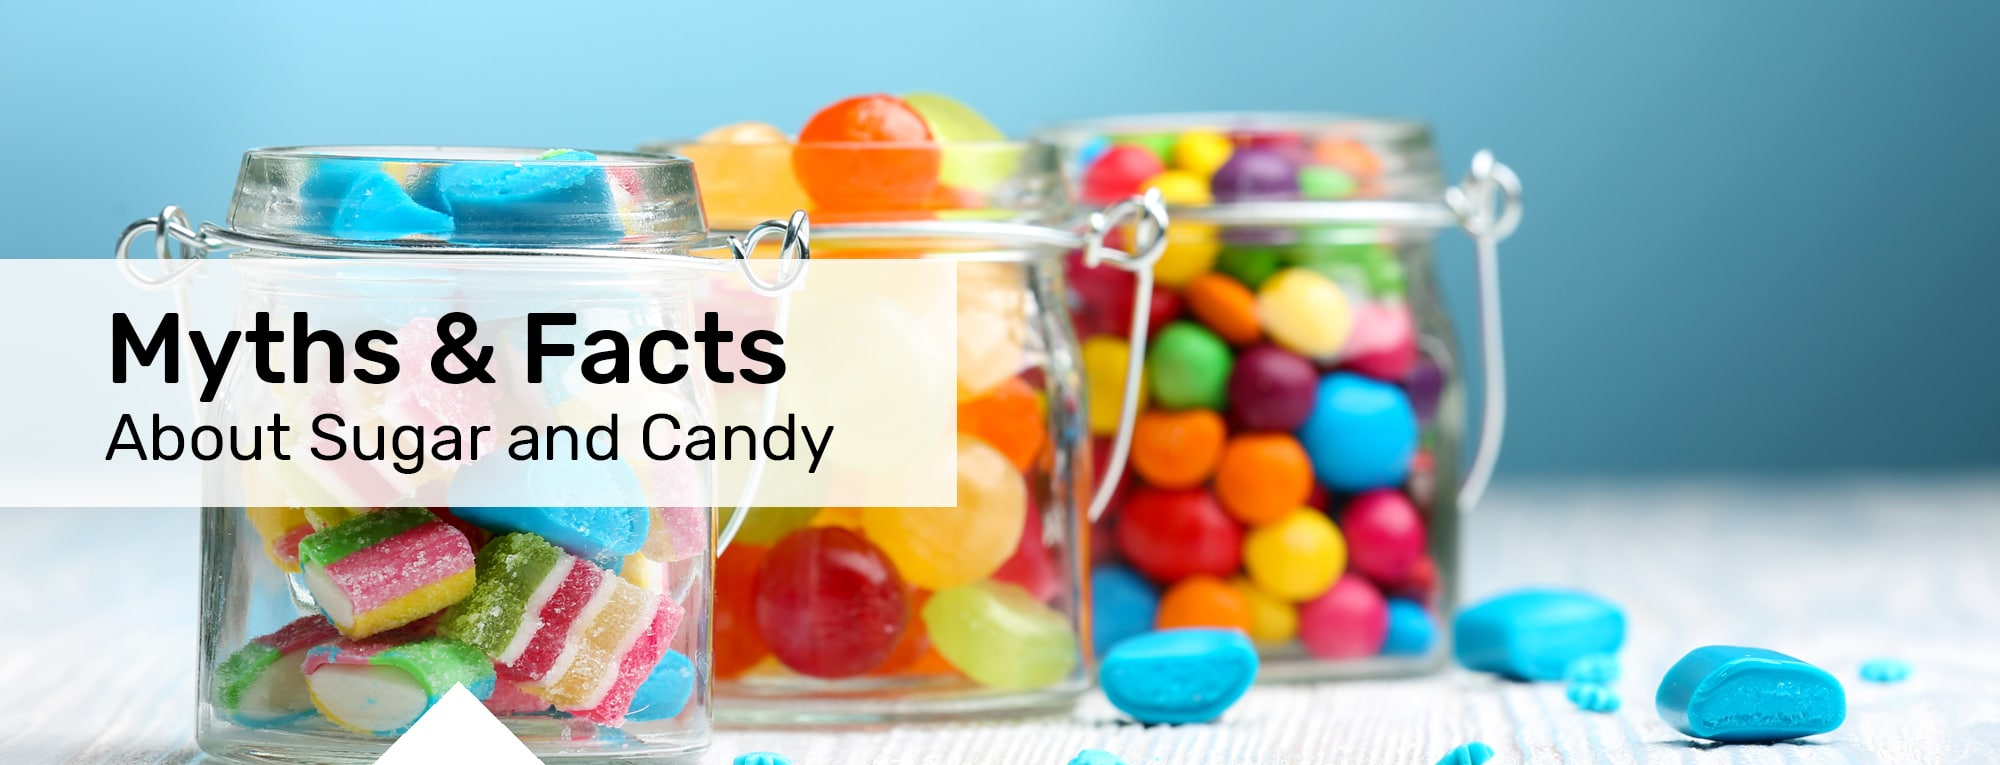 Myths & Facts About Sugar and Candy - Always a treat